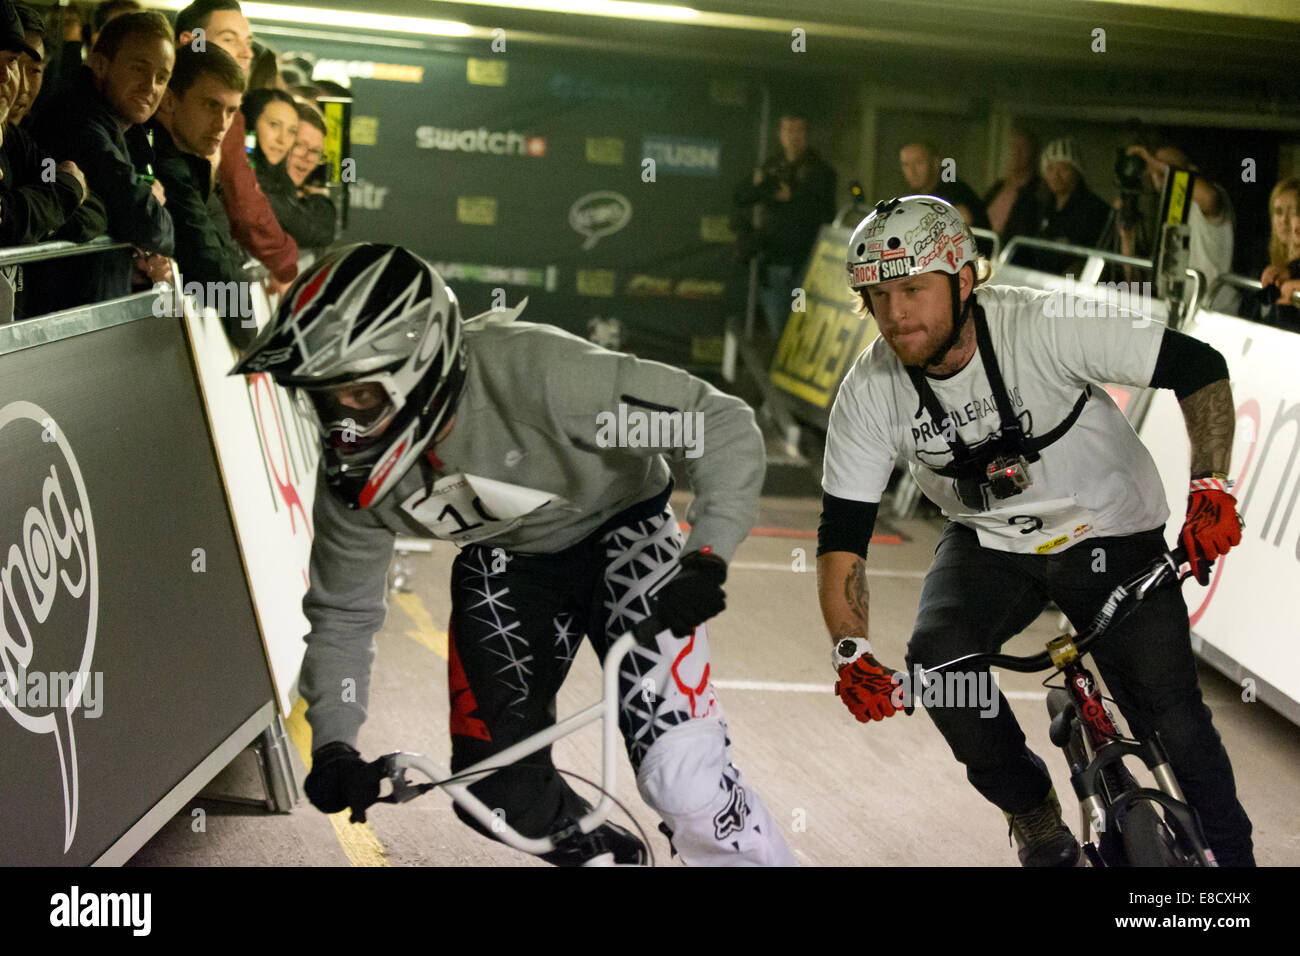 Ricky CROMPTON & Andy WATERMAN at Parkour Ride a multi-discipline cycling event held in an abandoned multi-storey Stock Photo